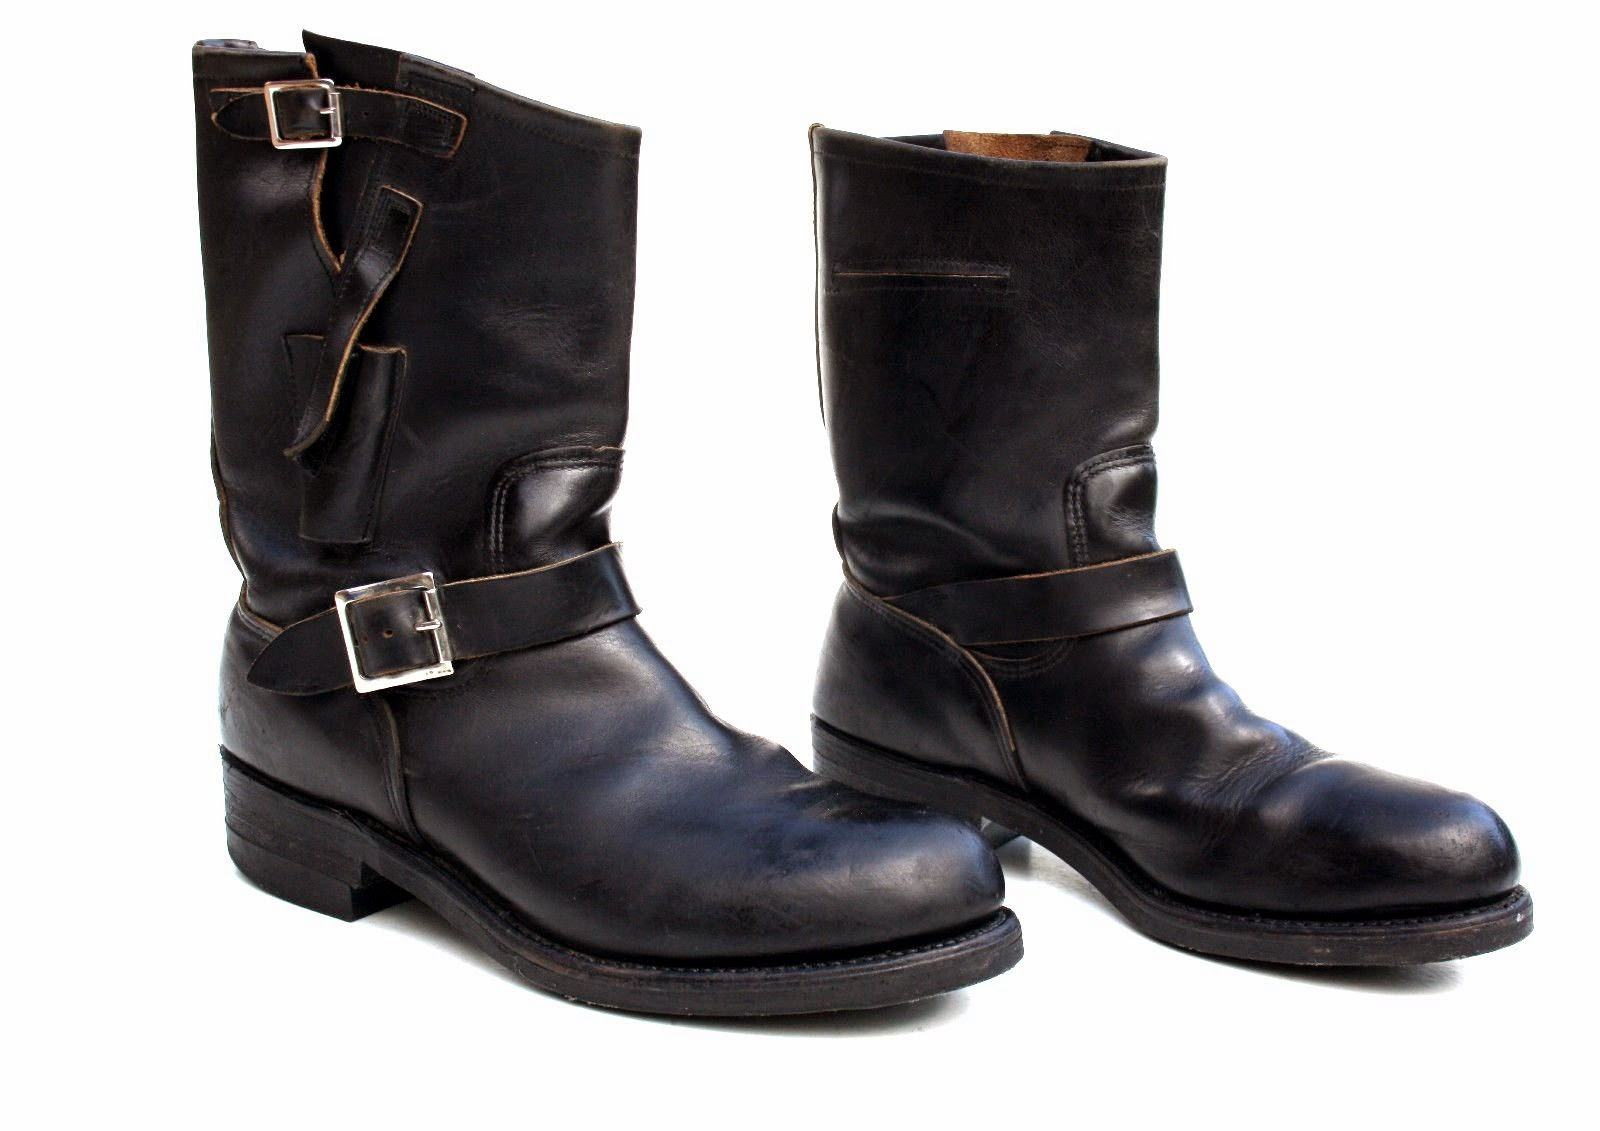 e8c725a10c6 Red wing engineer boots 2990